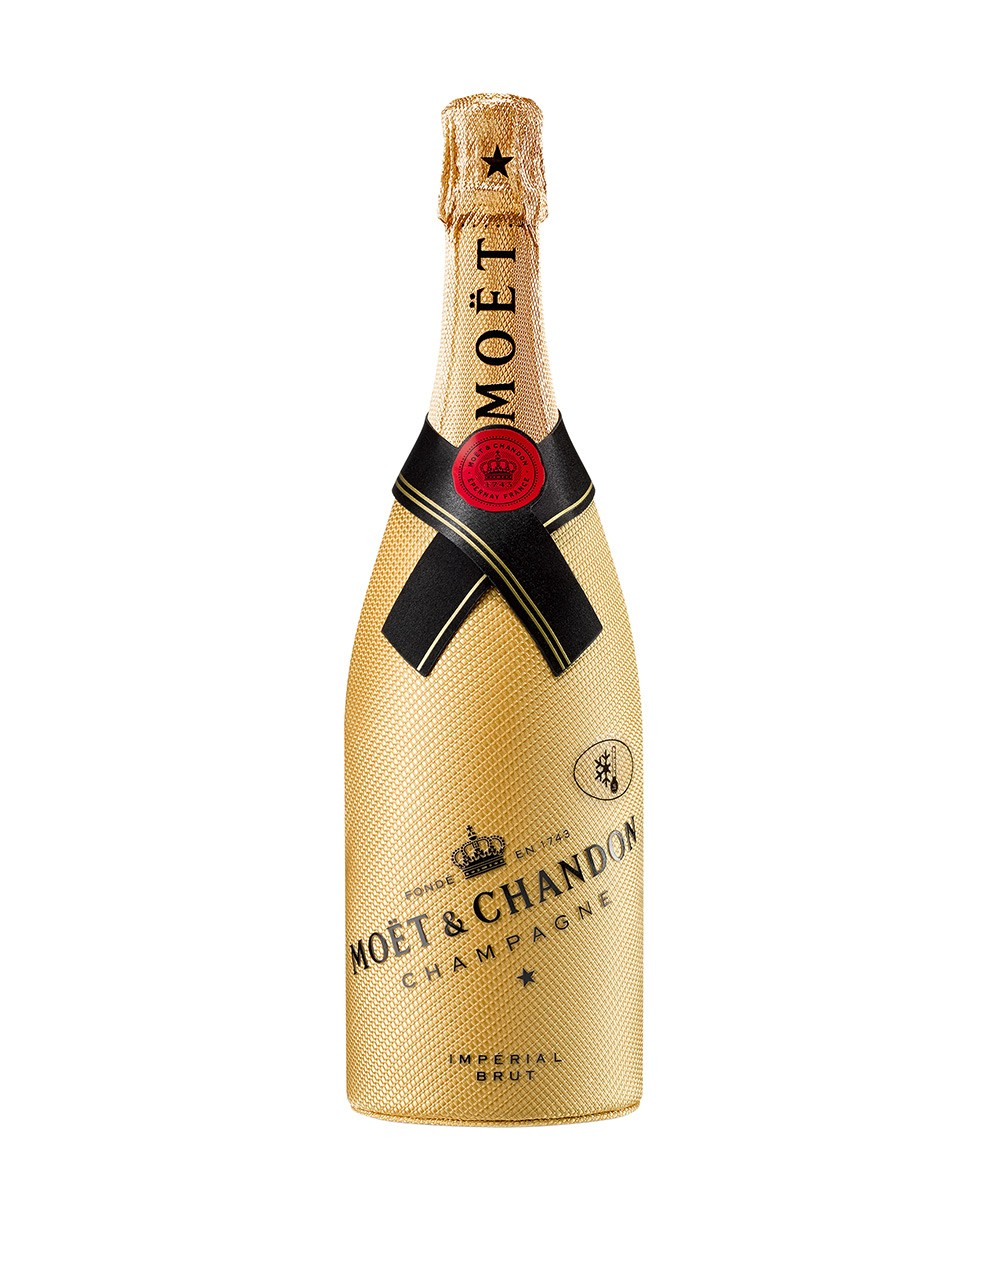 Bar Regal Moët & Chandon Gold Diamond Suit | Buy Online Or Send As A